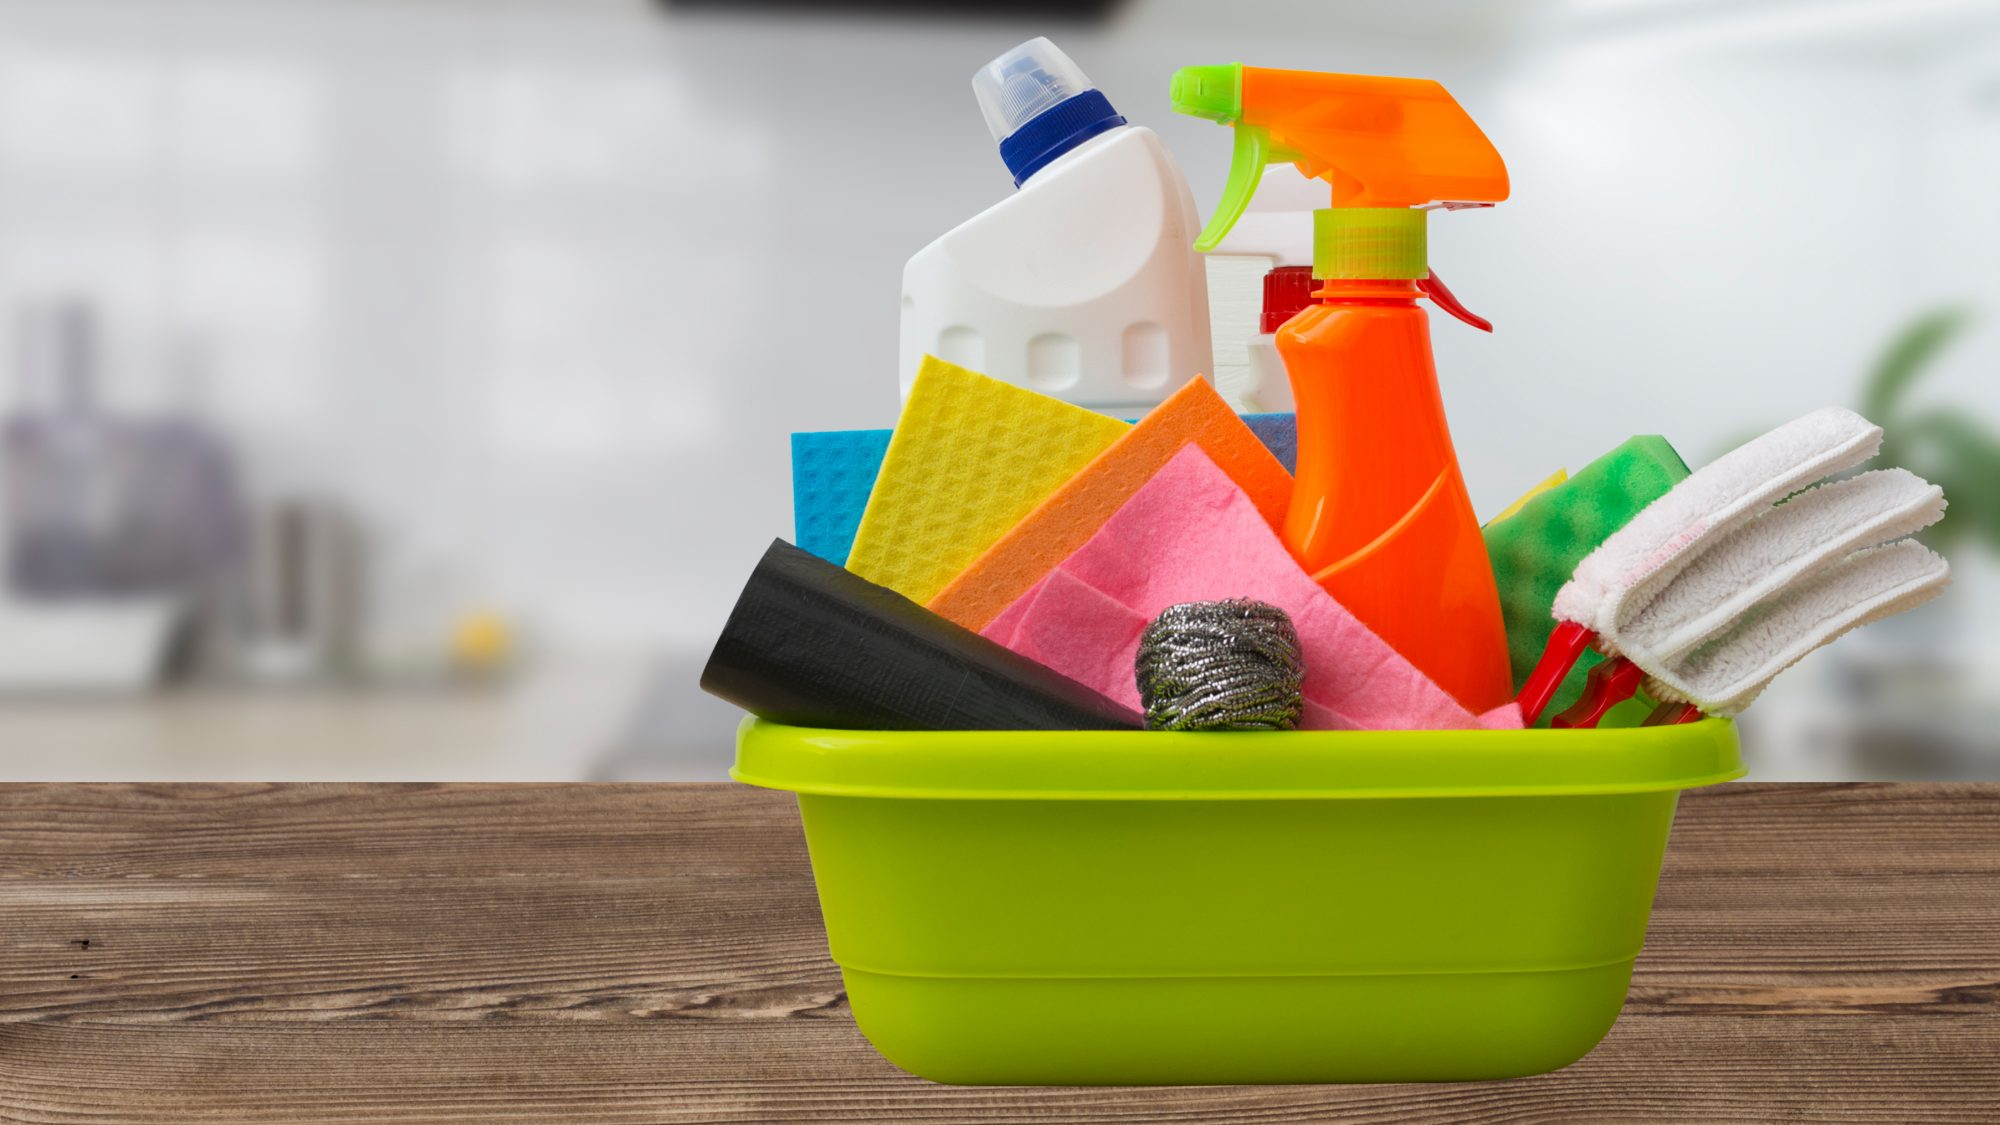 cleaning supplies in colorful caddy